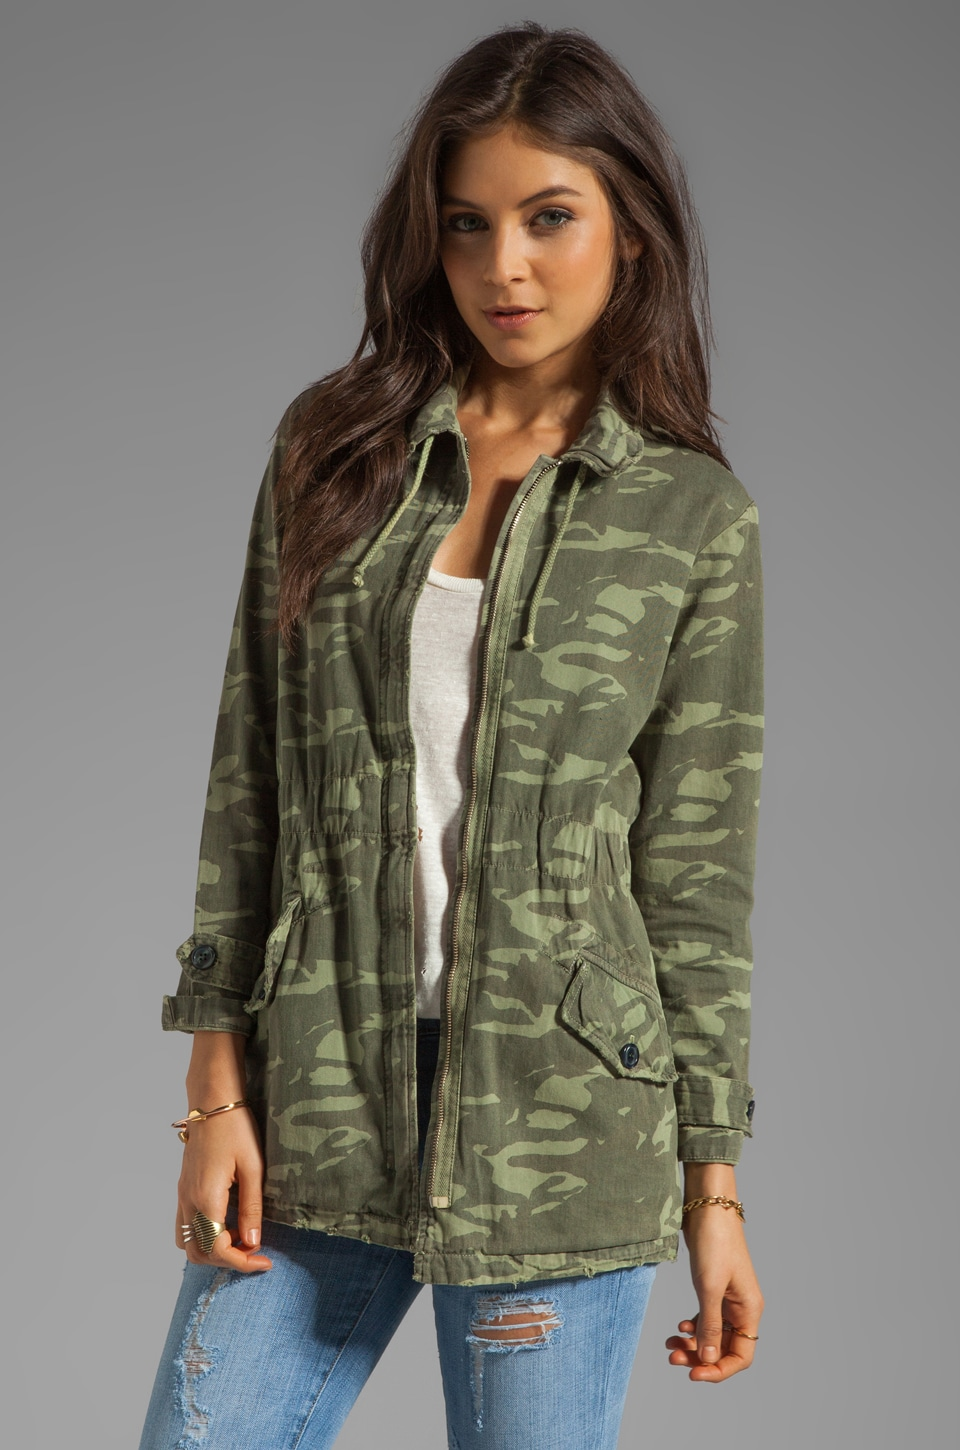 MONROW Camo Print Military Trench in Army